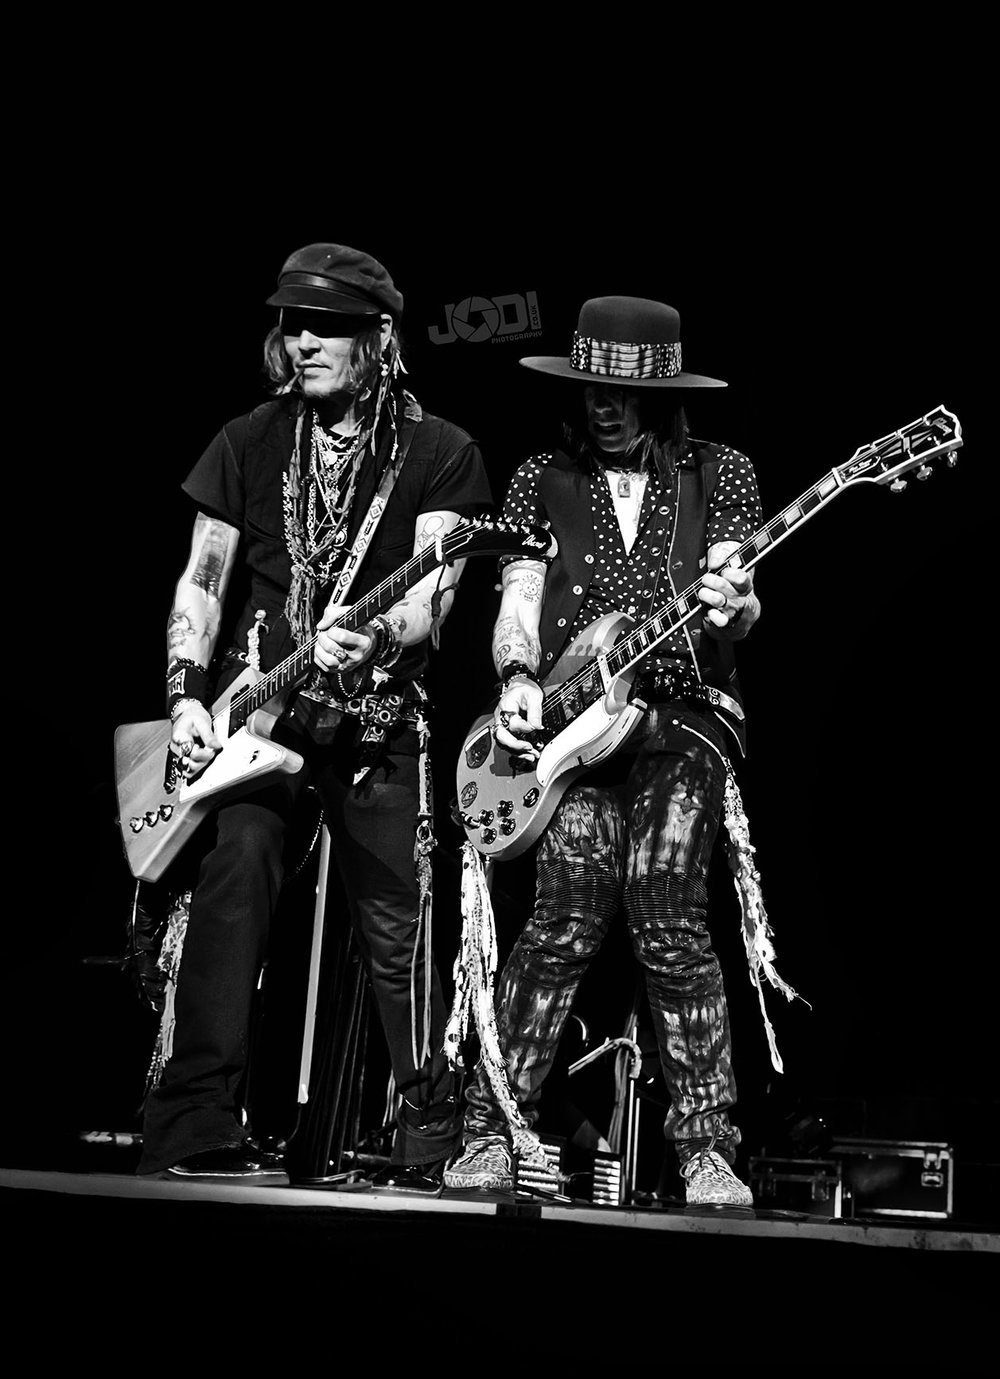 Hollywood Vampires at Birmingham Genting Arena by jodiphotography 104.jpg